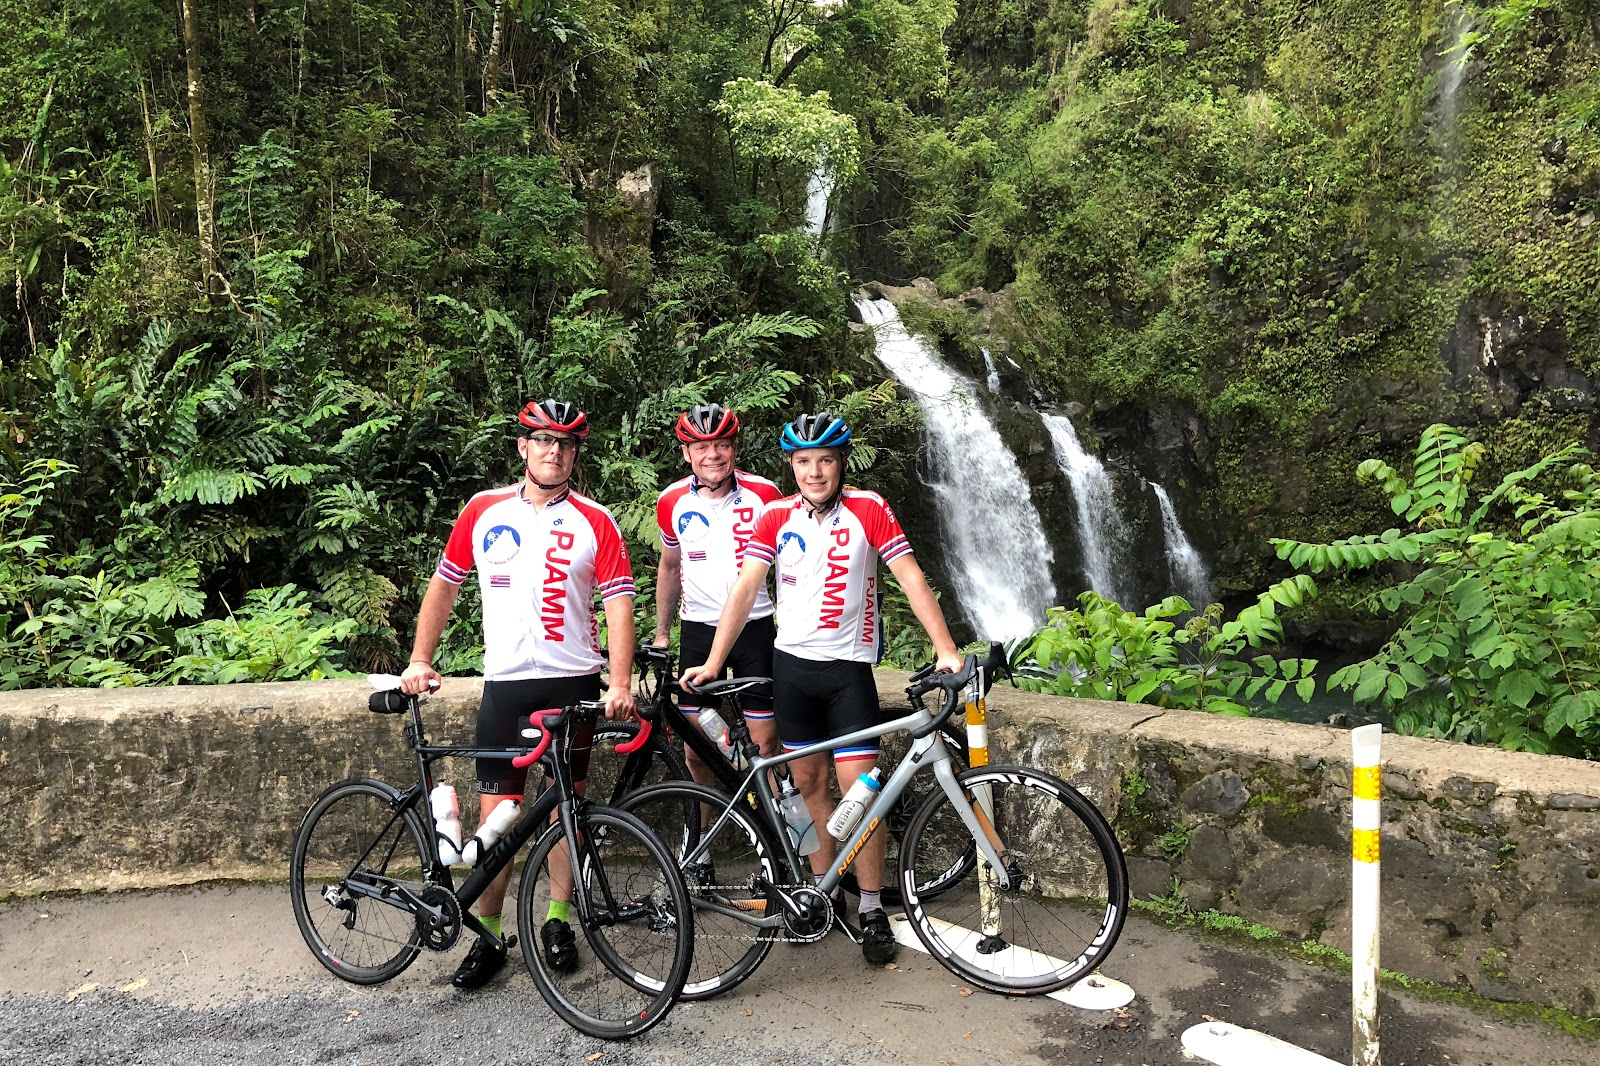 Cycling the Road to Hana - 3 PJAMM cyclists with bikes at waterfall